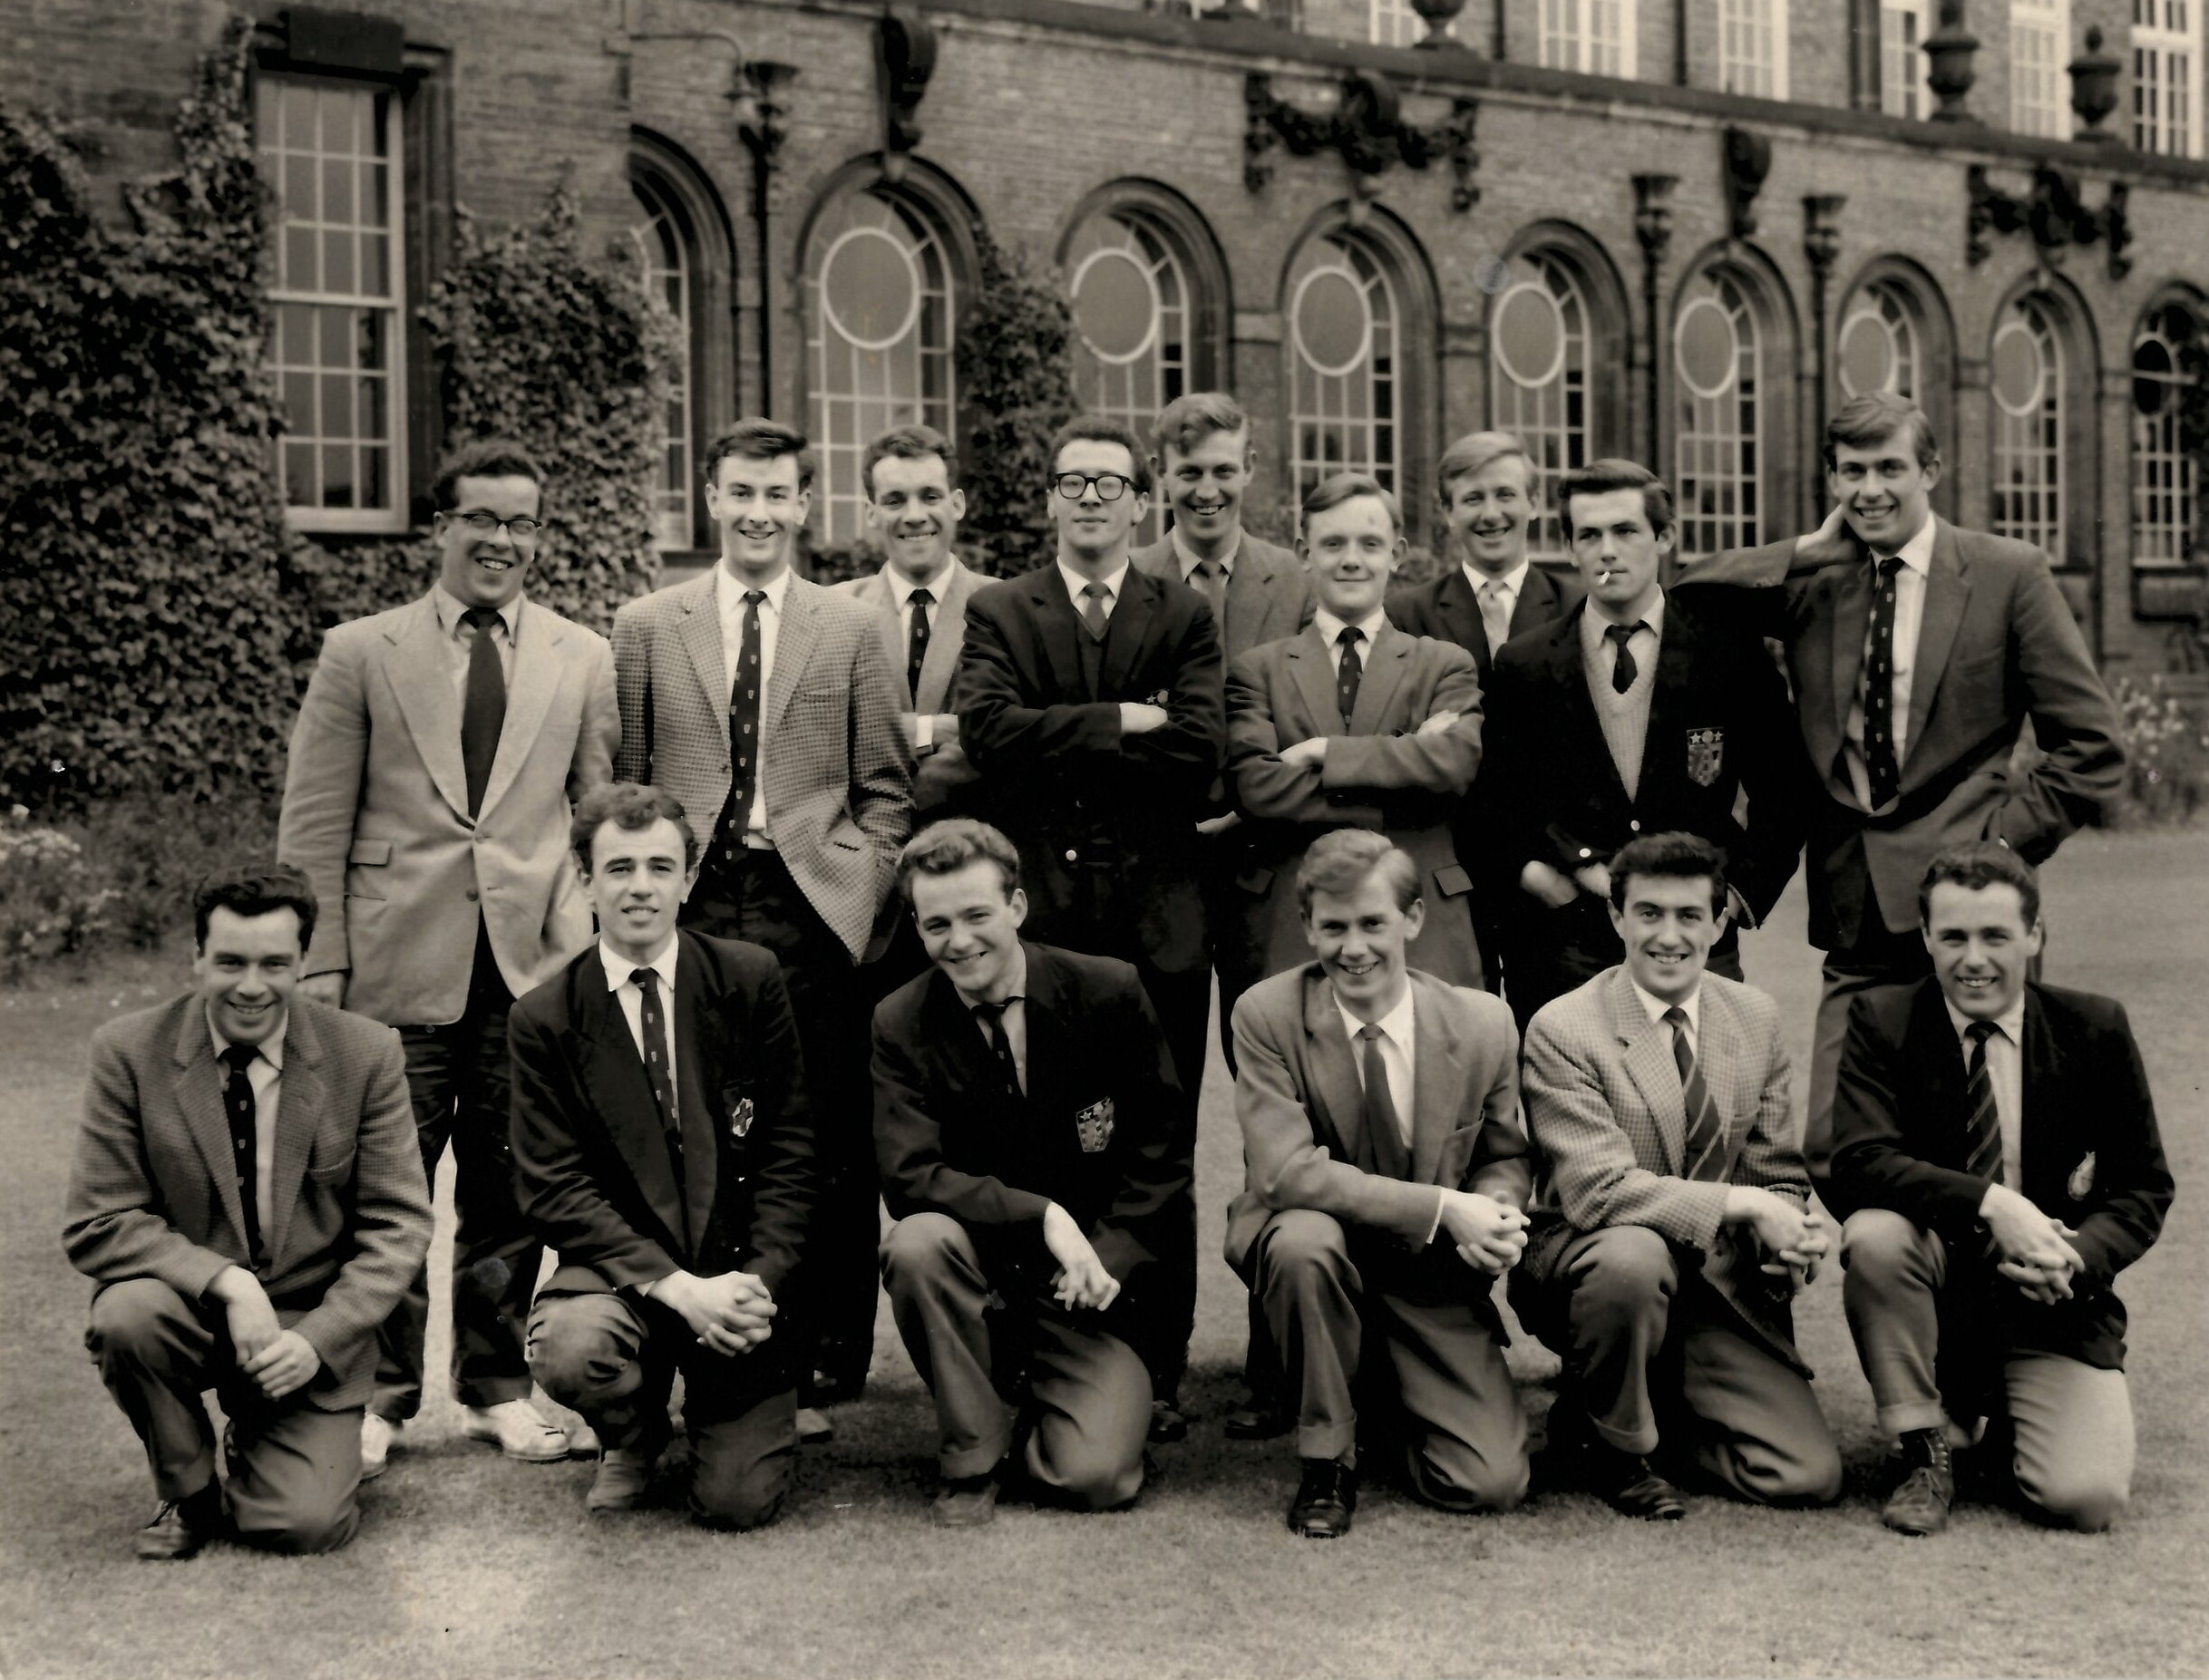 David Handley, centre wearing glasses, with Fairfax friends in 1961